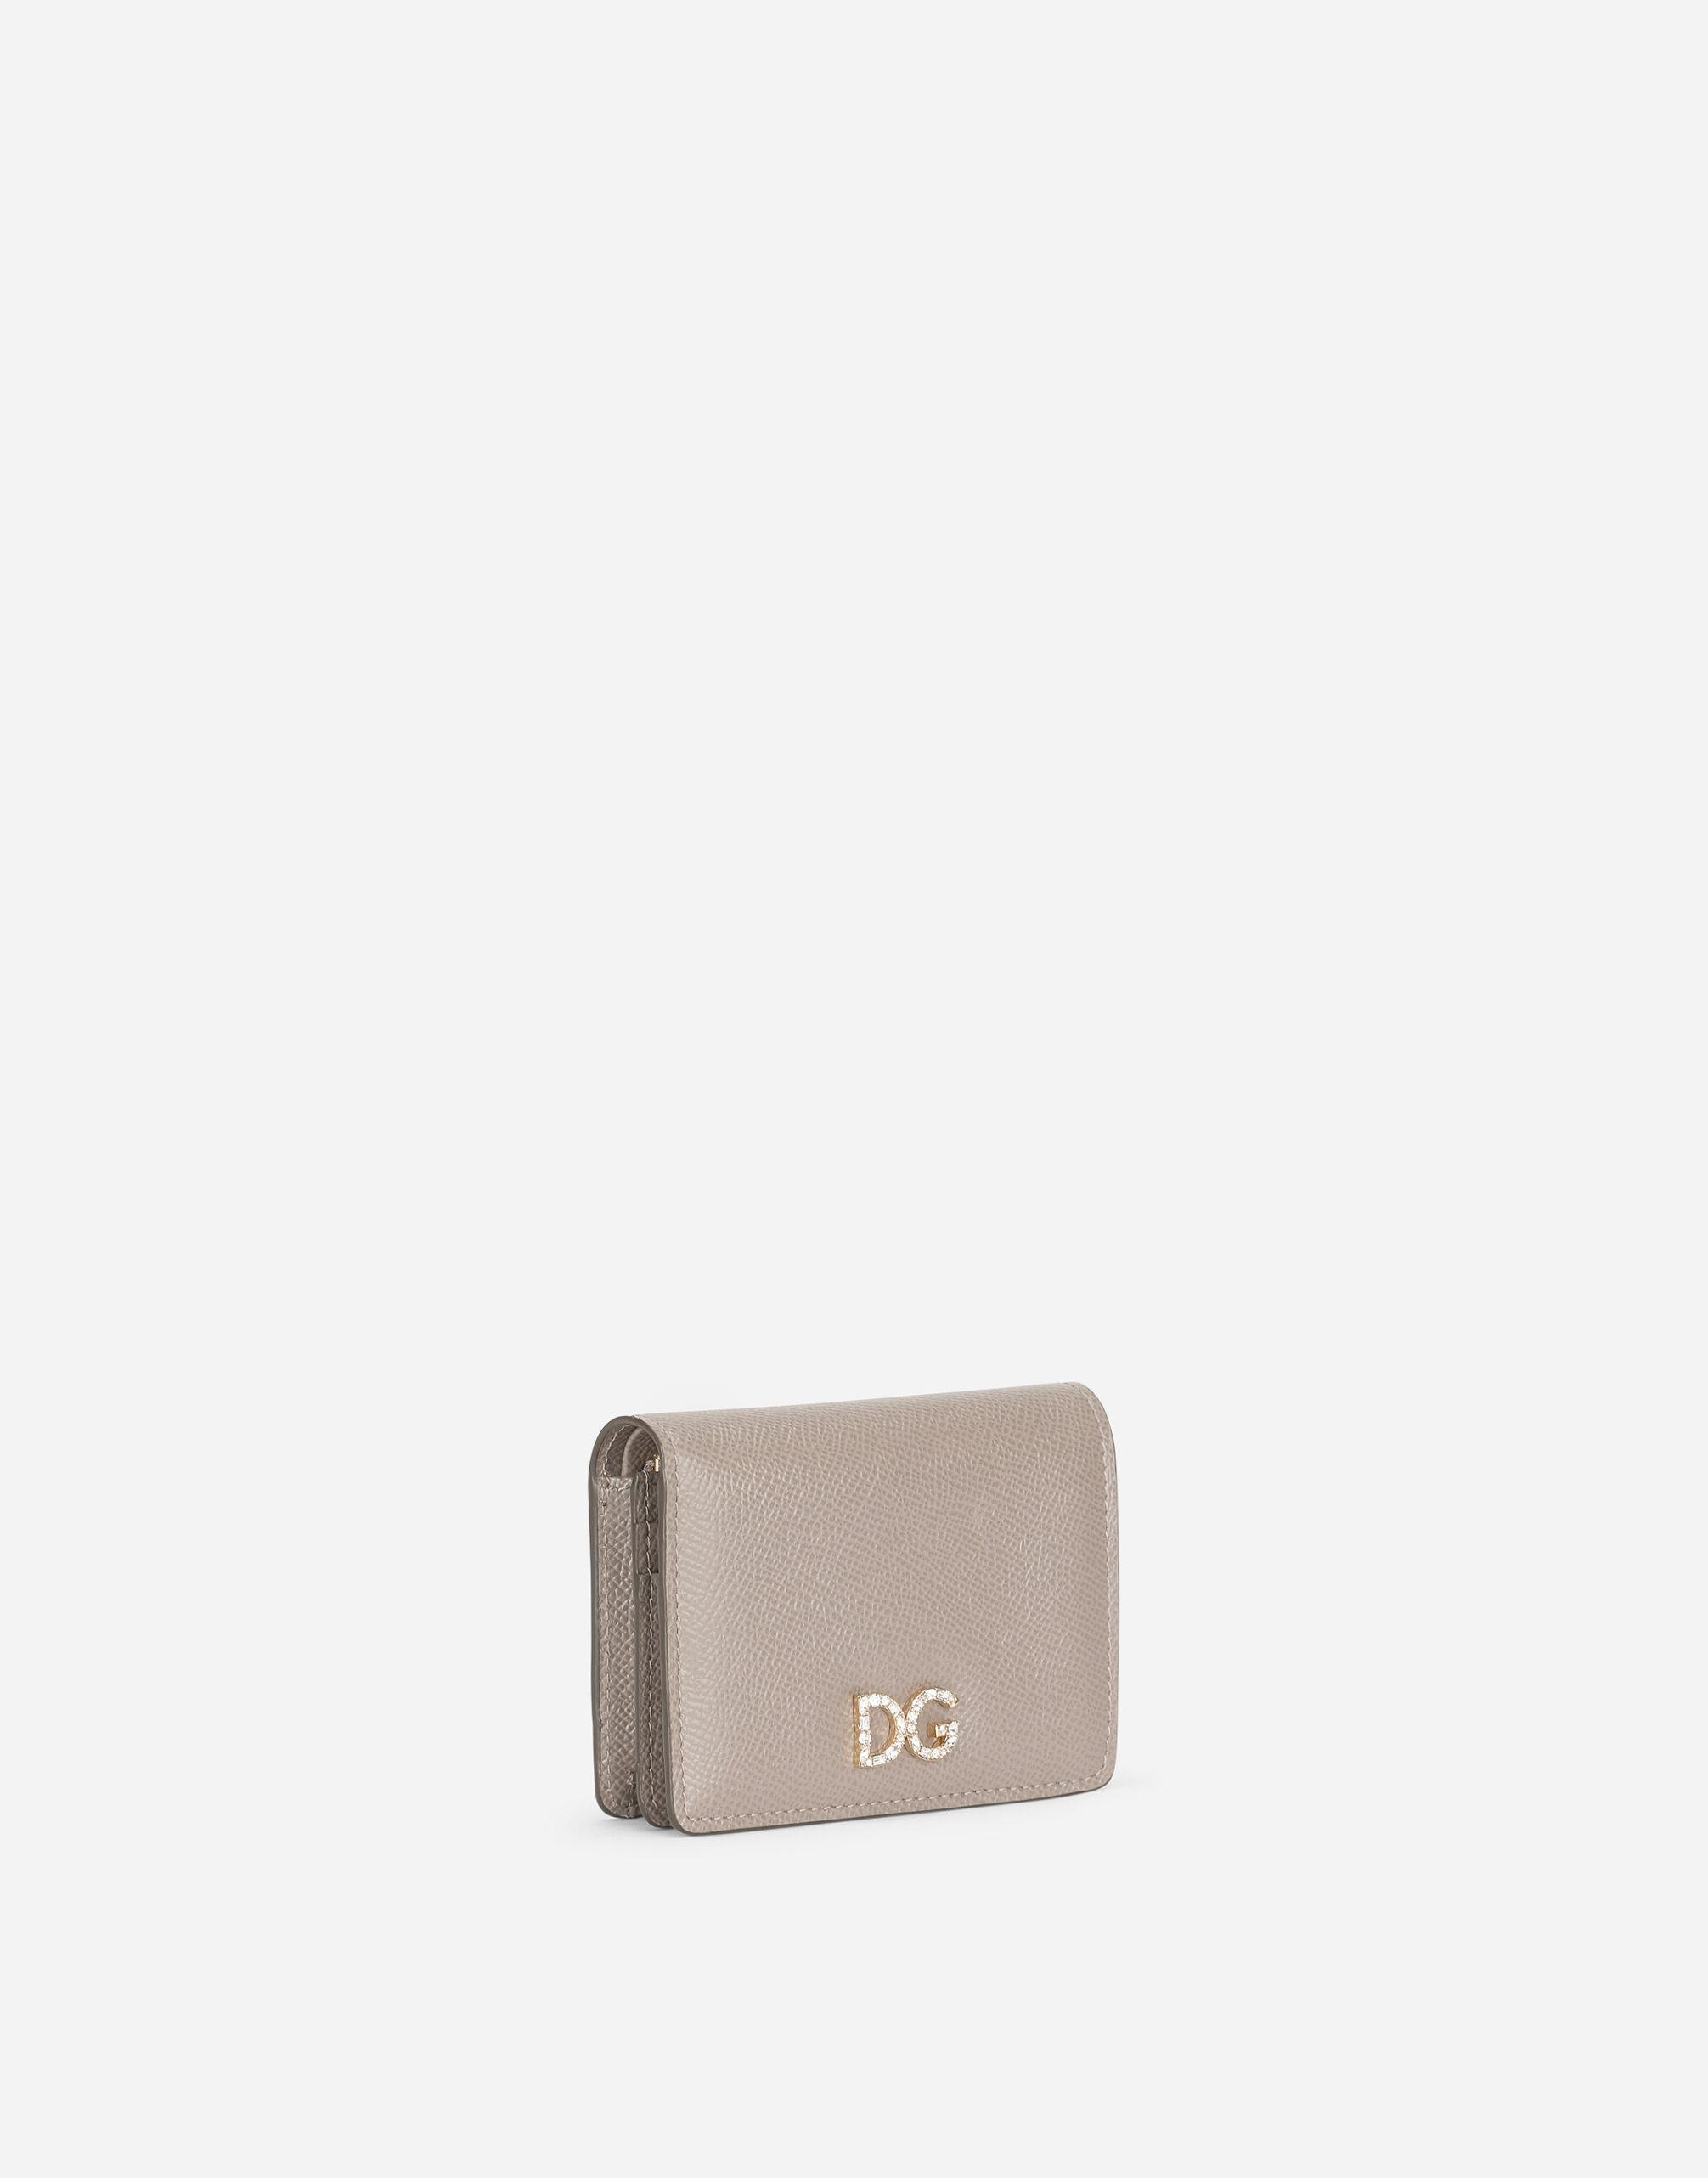 Small continental wallet in Dauphine calfskin with rhinestone-detailed DG logo 1